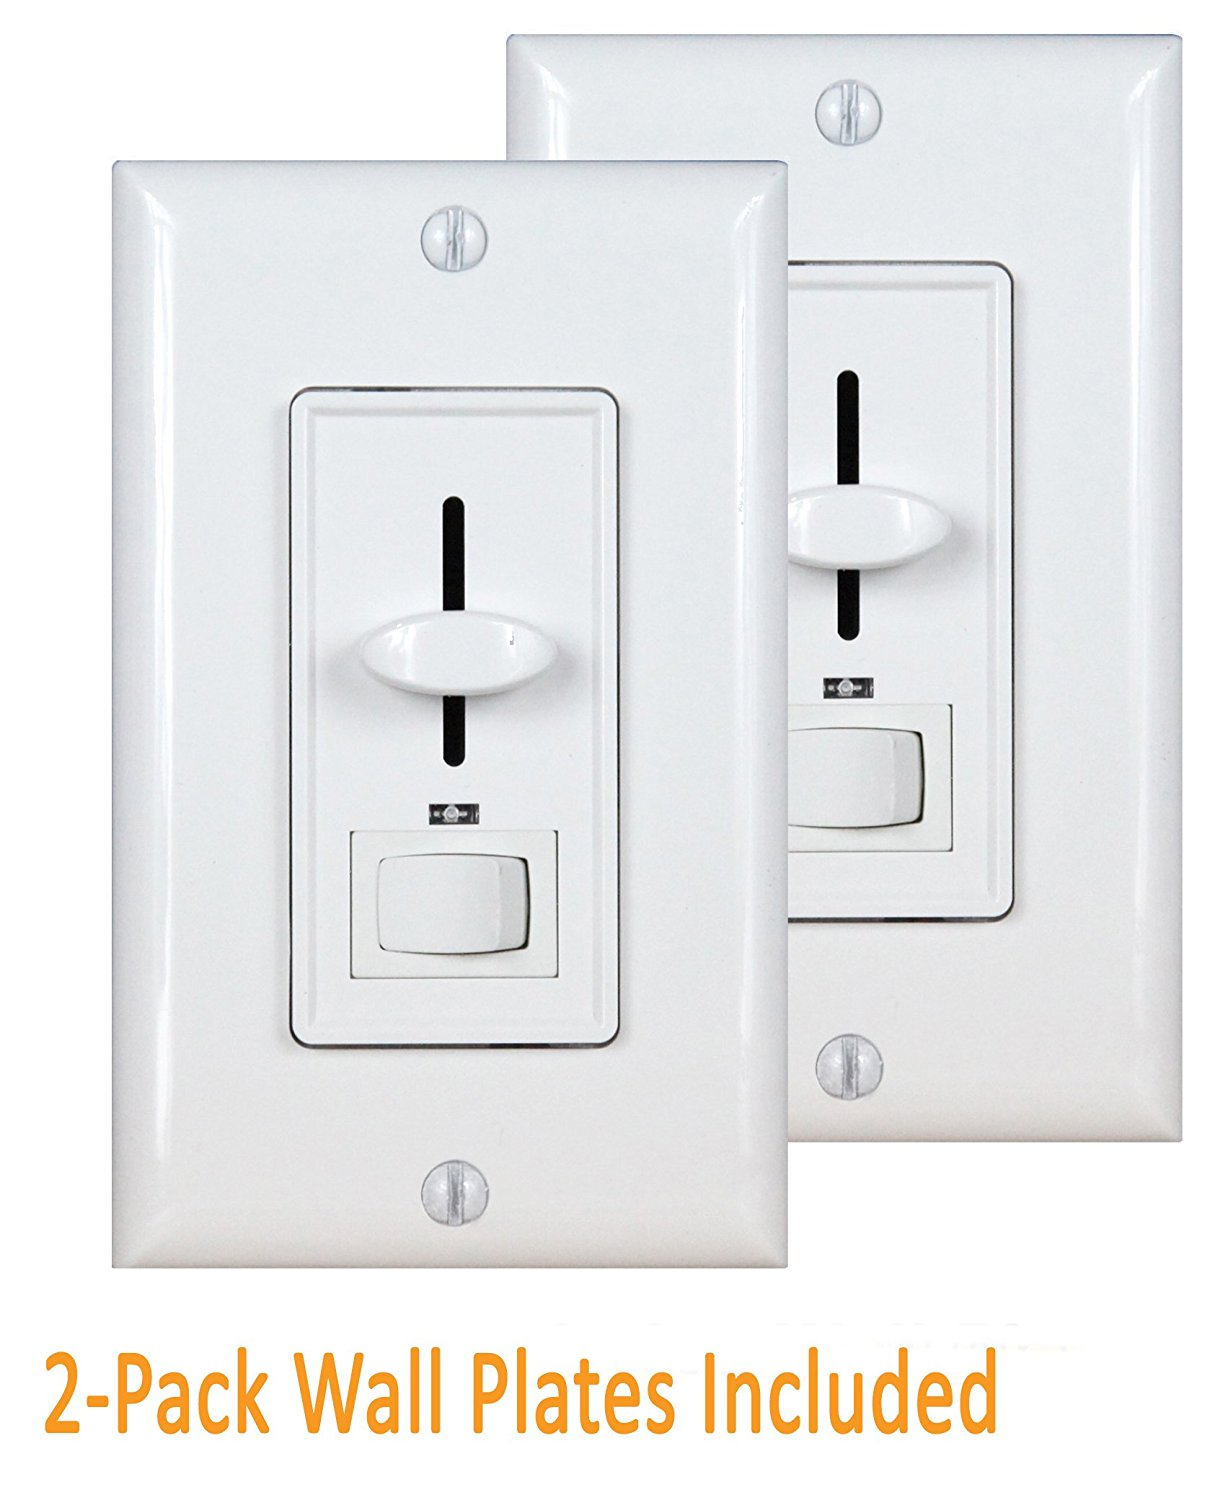 Enerlites 50321-W 3-Way Dimmer Switch for Dimmable Incandescent   Halogen 700-Watts by Enerlites